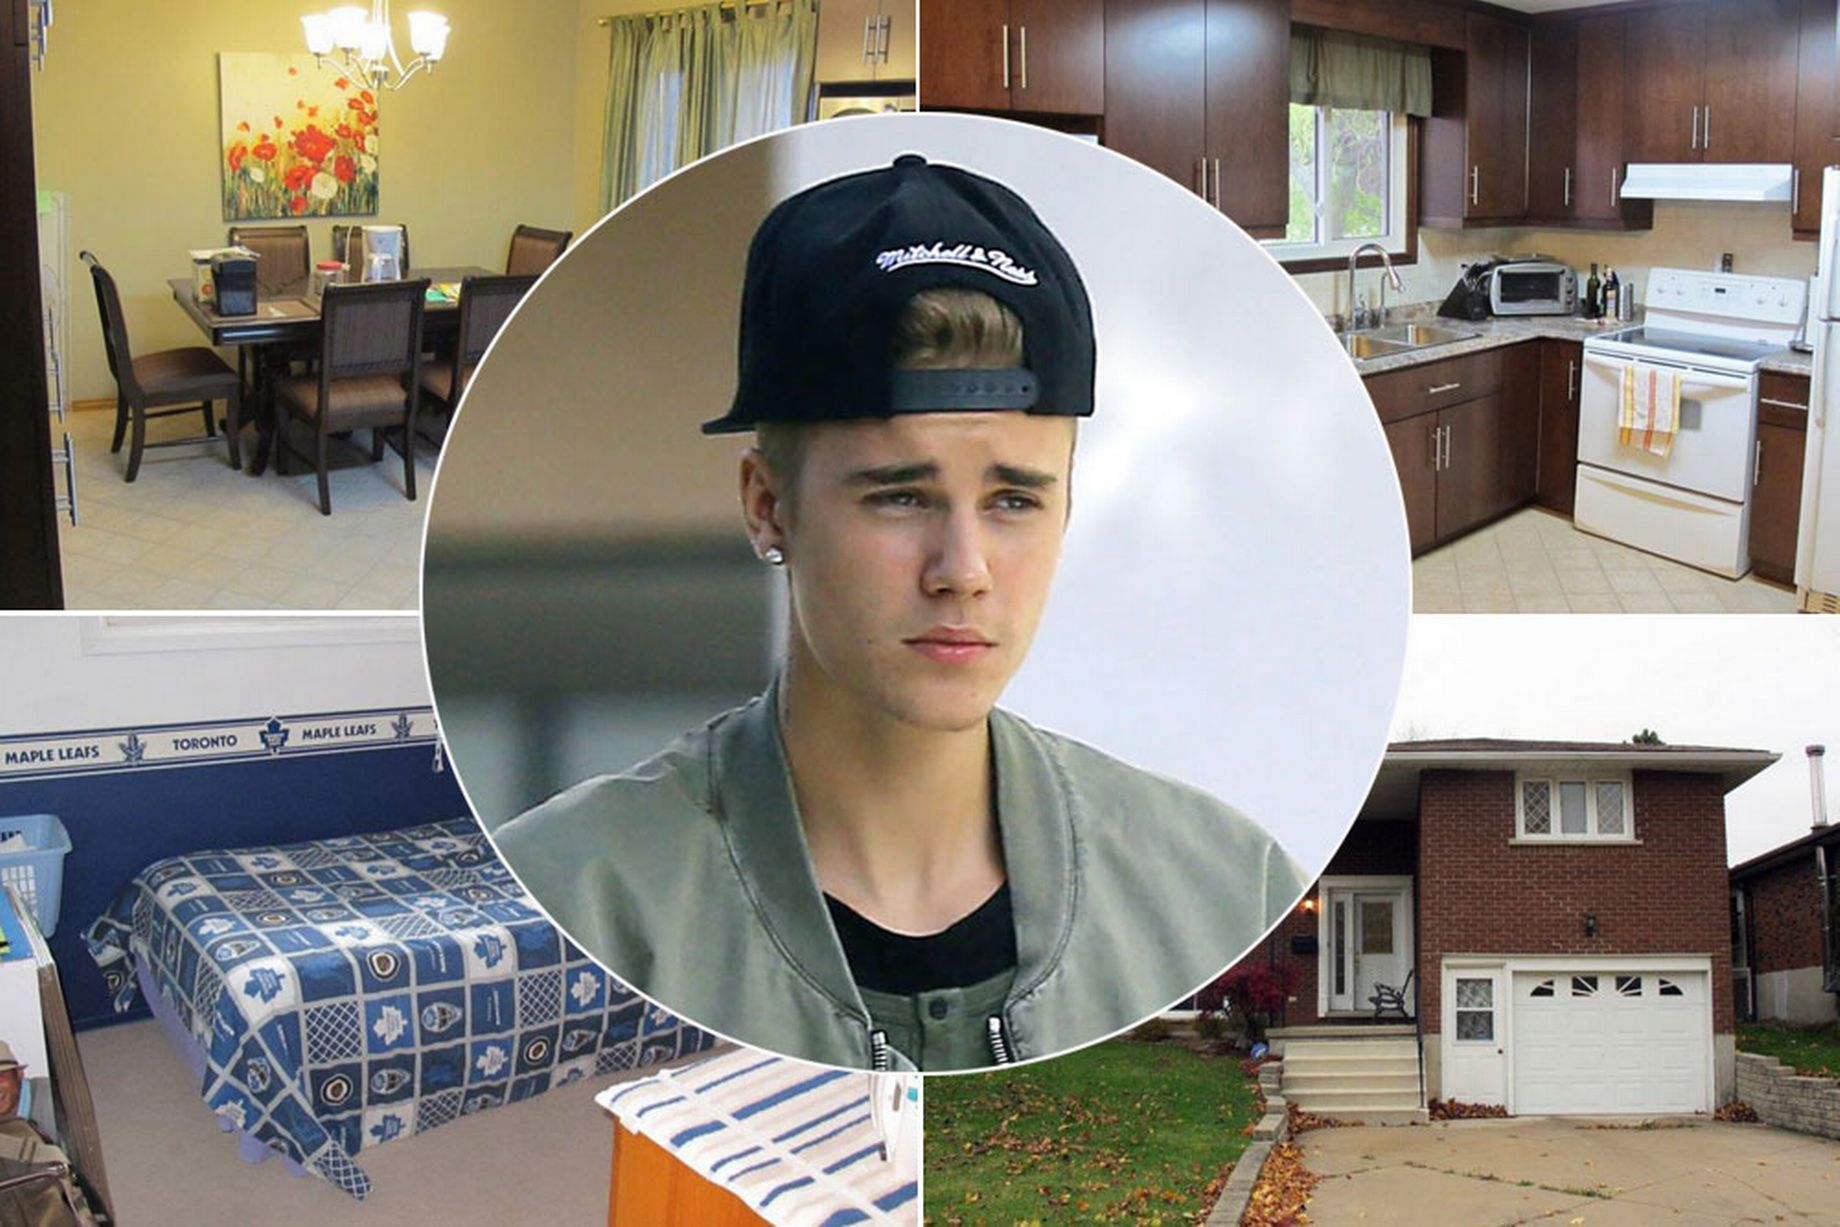 Justin Bieber PUNCHES A MAN, Caught on Video, Watch Here, Damning Footage! image